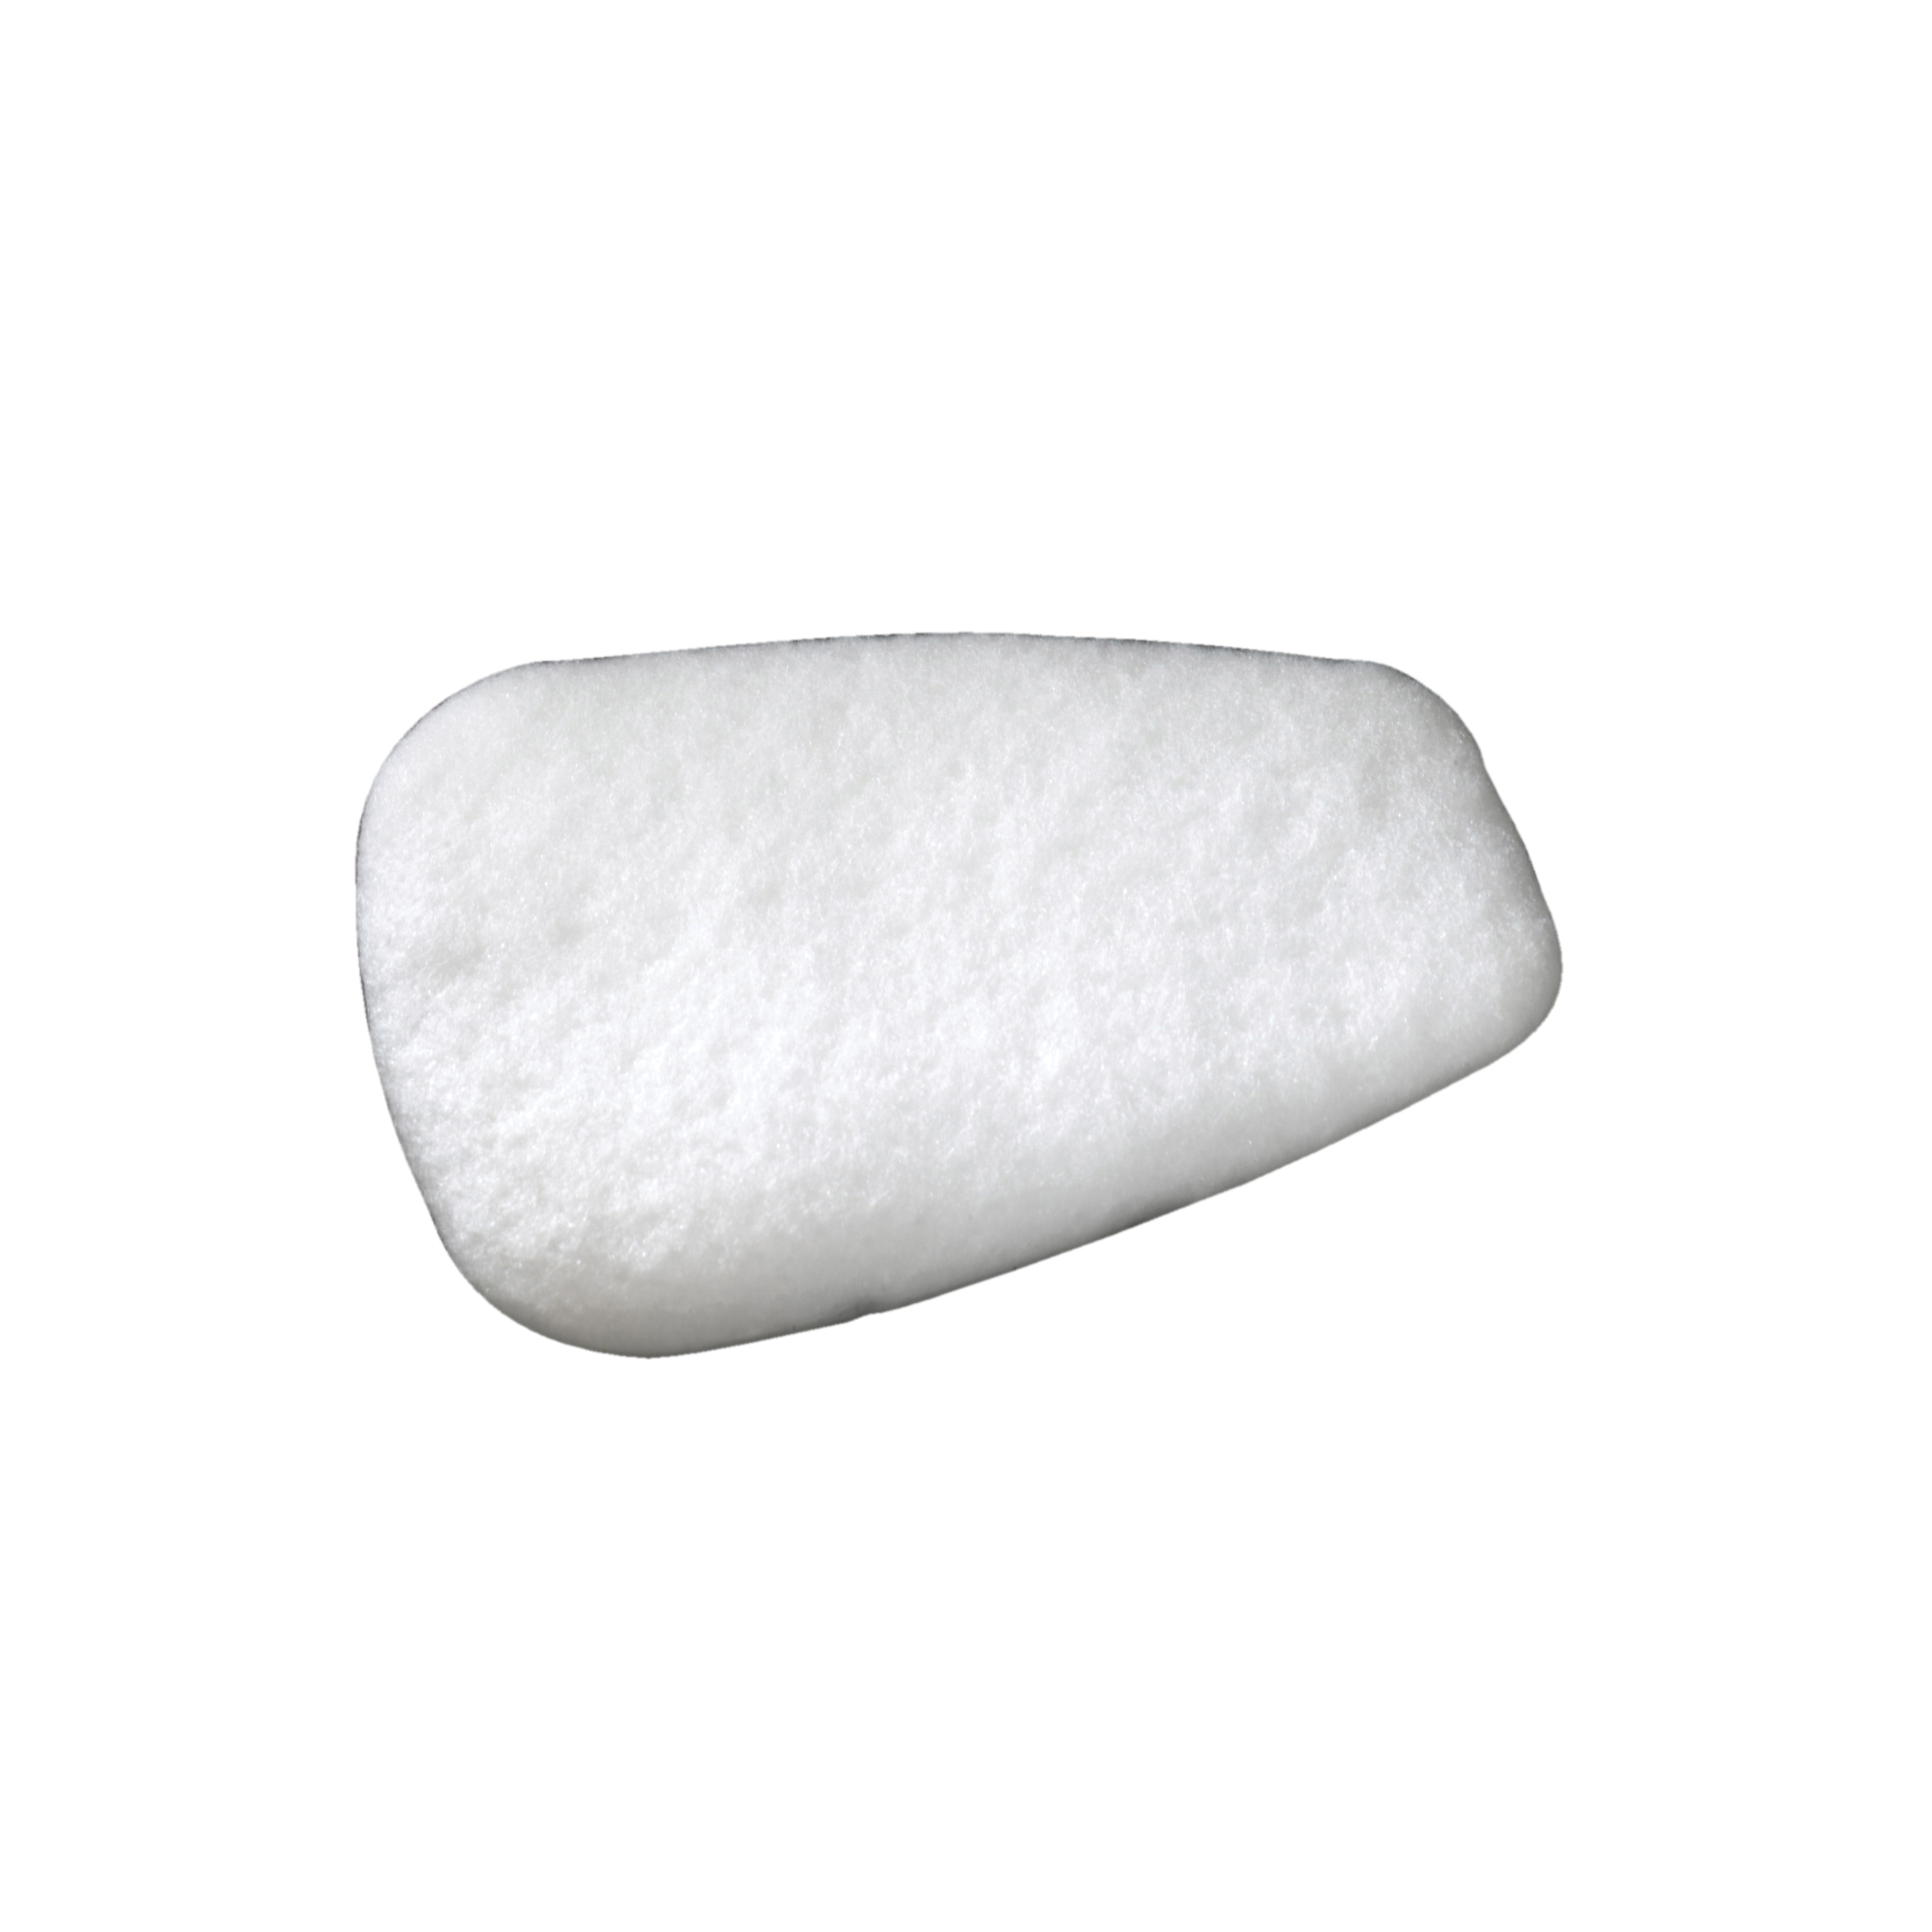 3M™ 051138-46464 Low Profile Particulate Filter, For Use With 3M™ 5000 Series Reusable Respirators, 6000 Series Cartridges, 603 Filter Adapters and 501 Filter Retainers, N95, 0.95 Filter Efficiency, Bayonet Connection, White